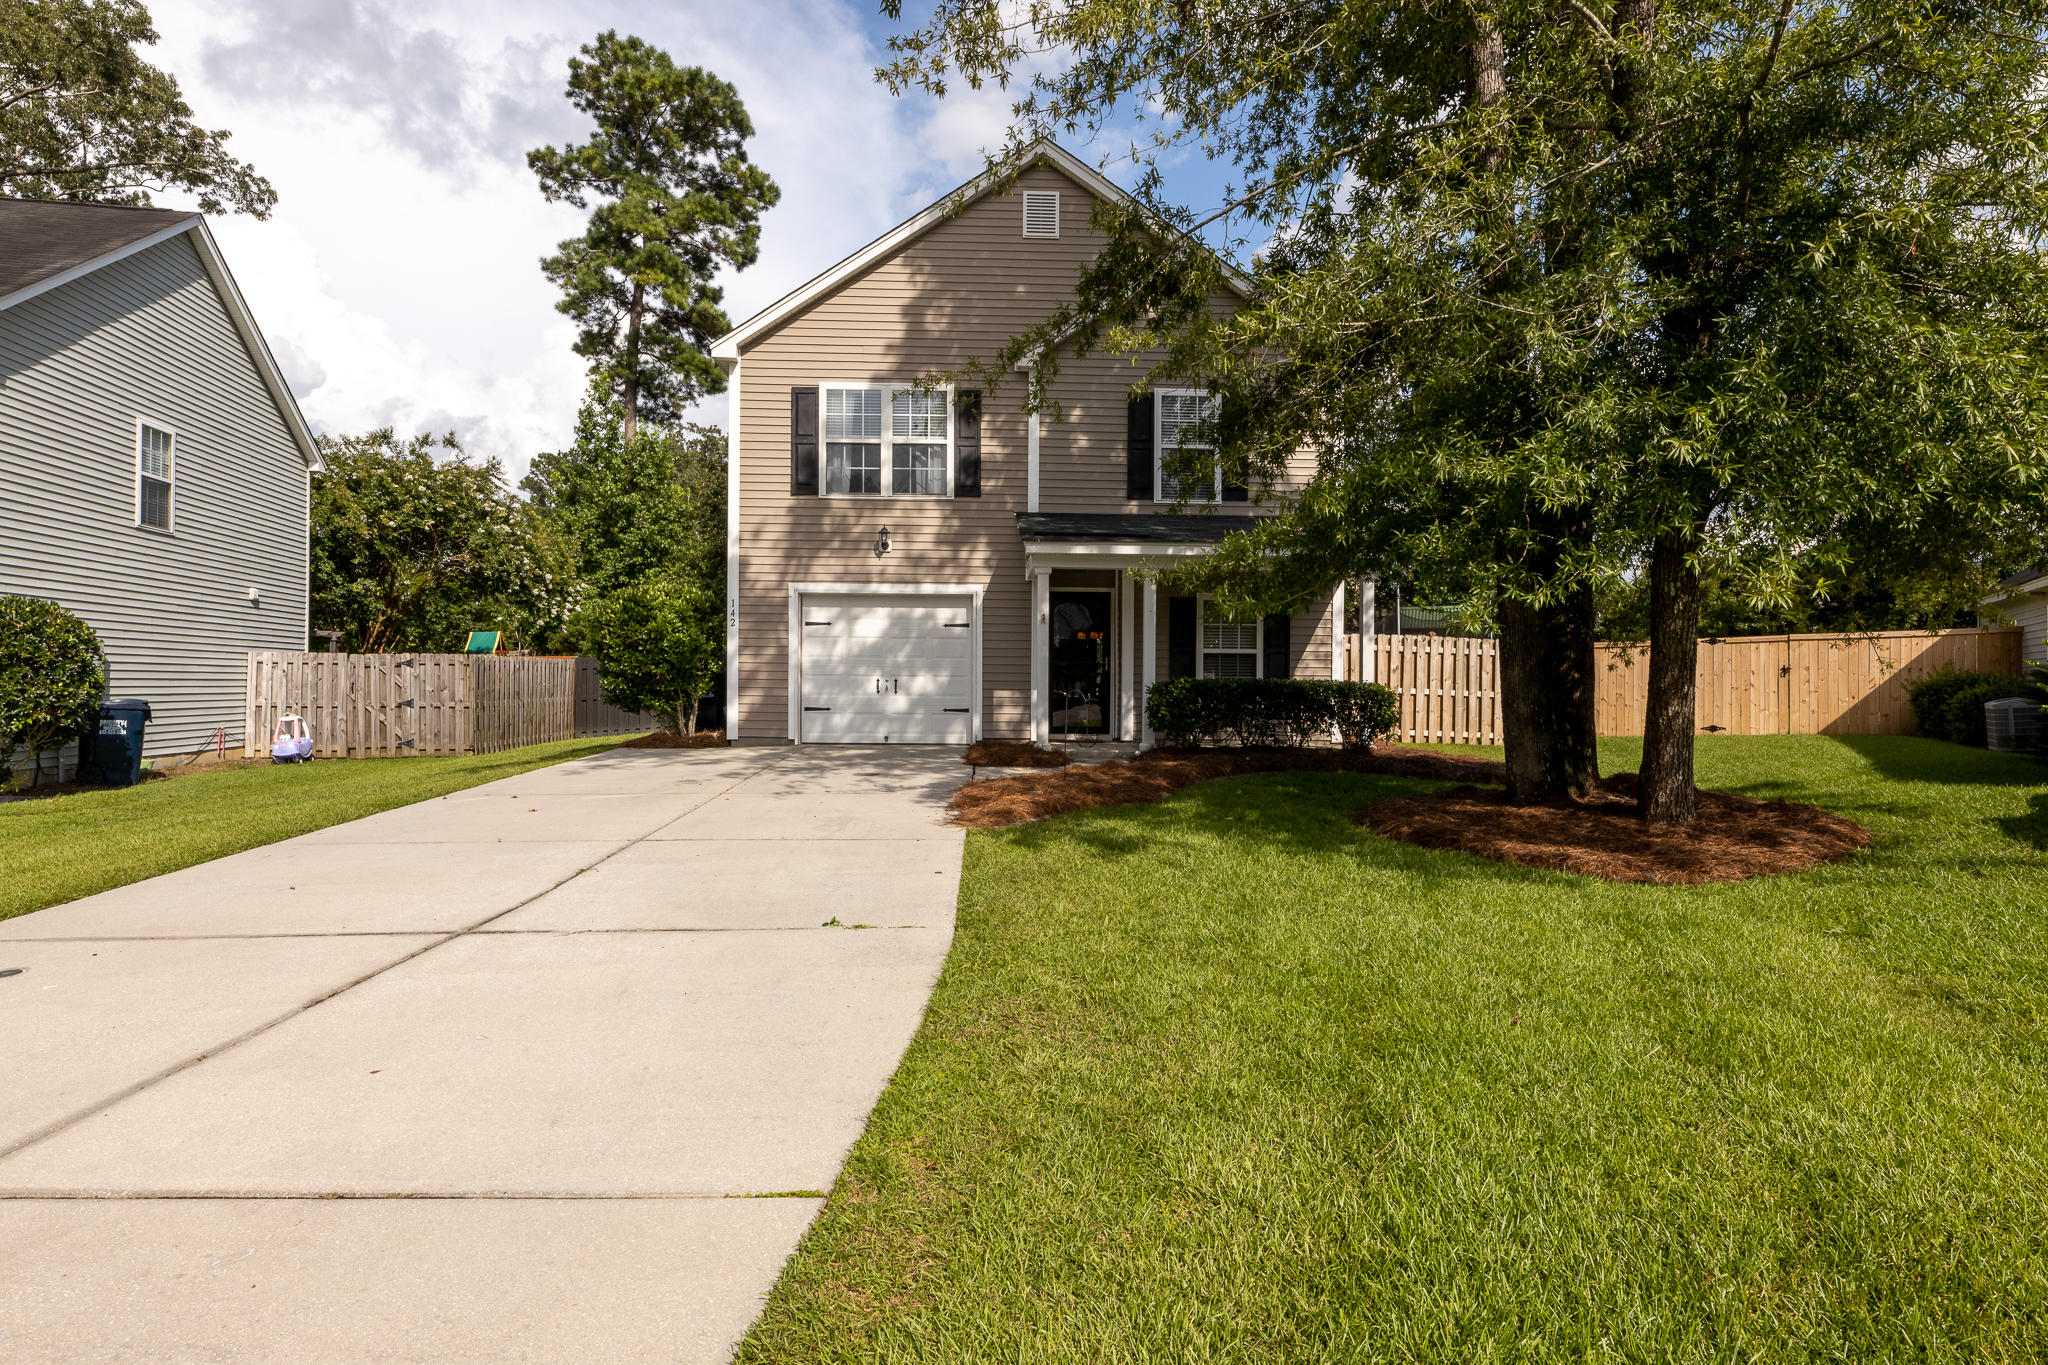 142 Malibu Road Summerville, Sc 29483